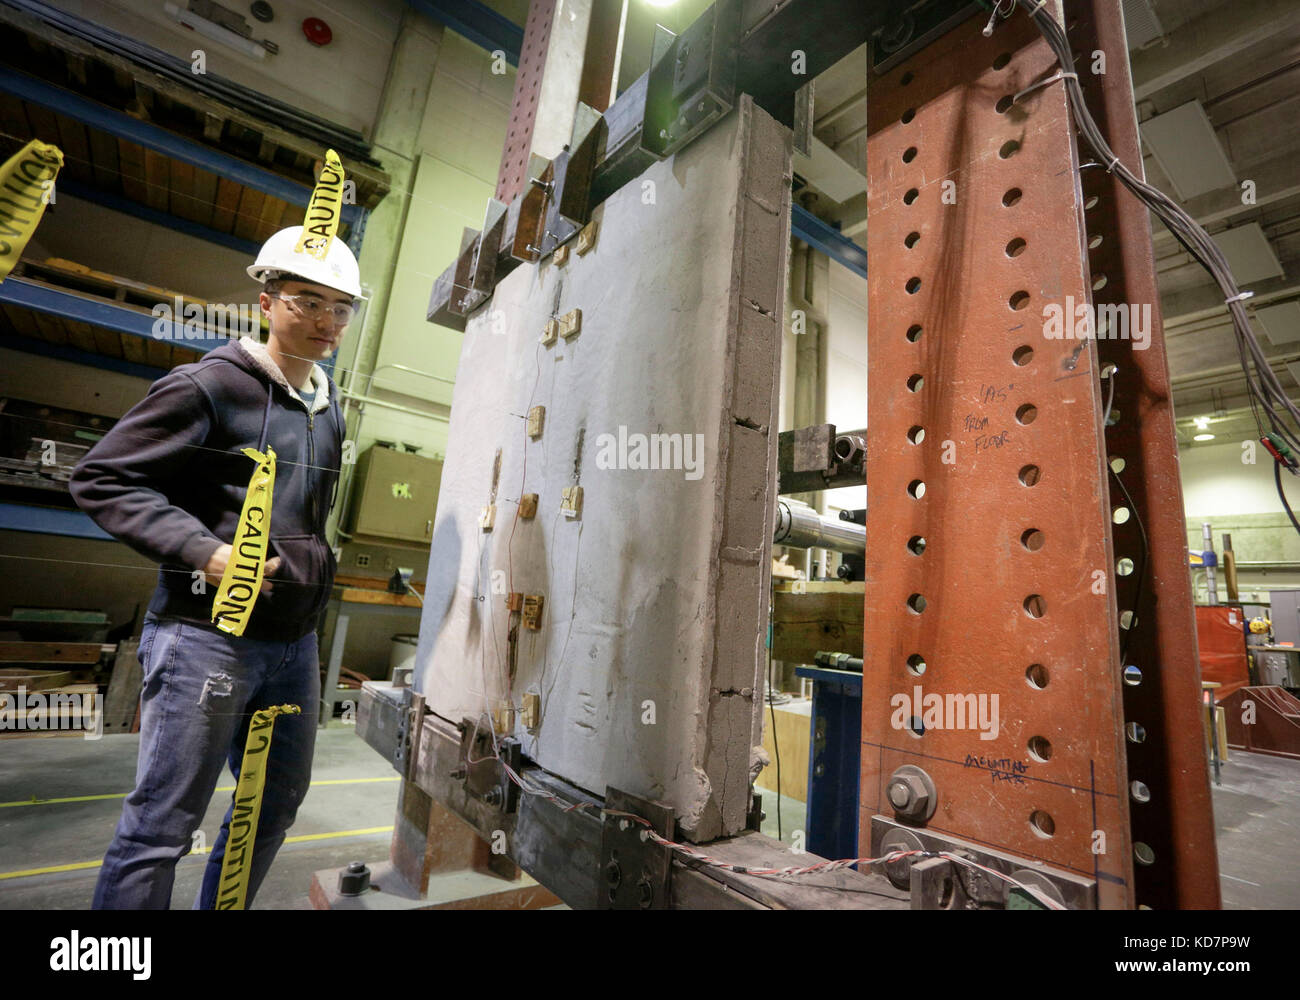 Vancouver. 10th Oct, 2017. A researcher checks on a concrete wall coated with eco-friendly ductile cementitious - Stock Image